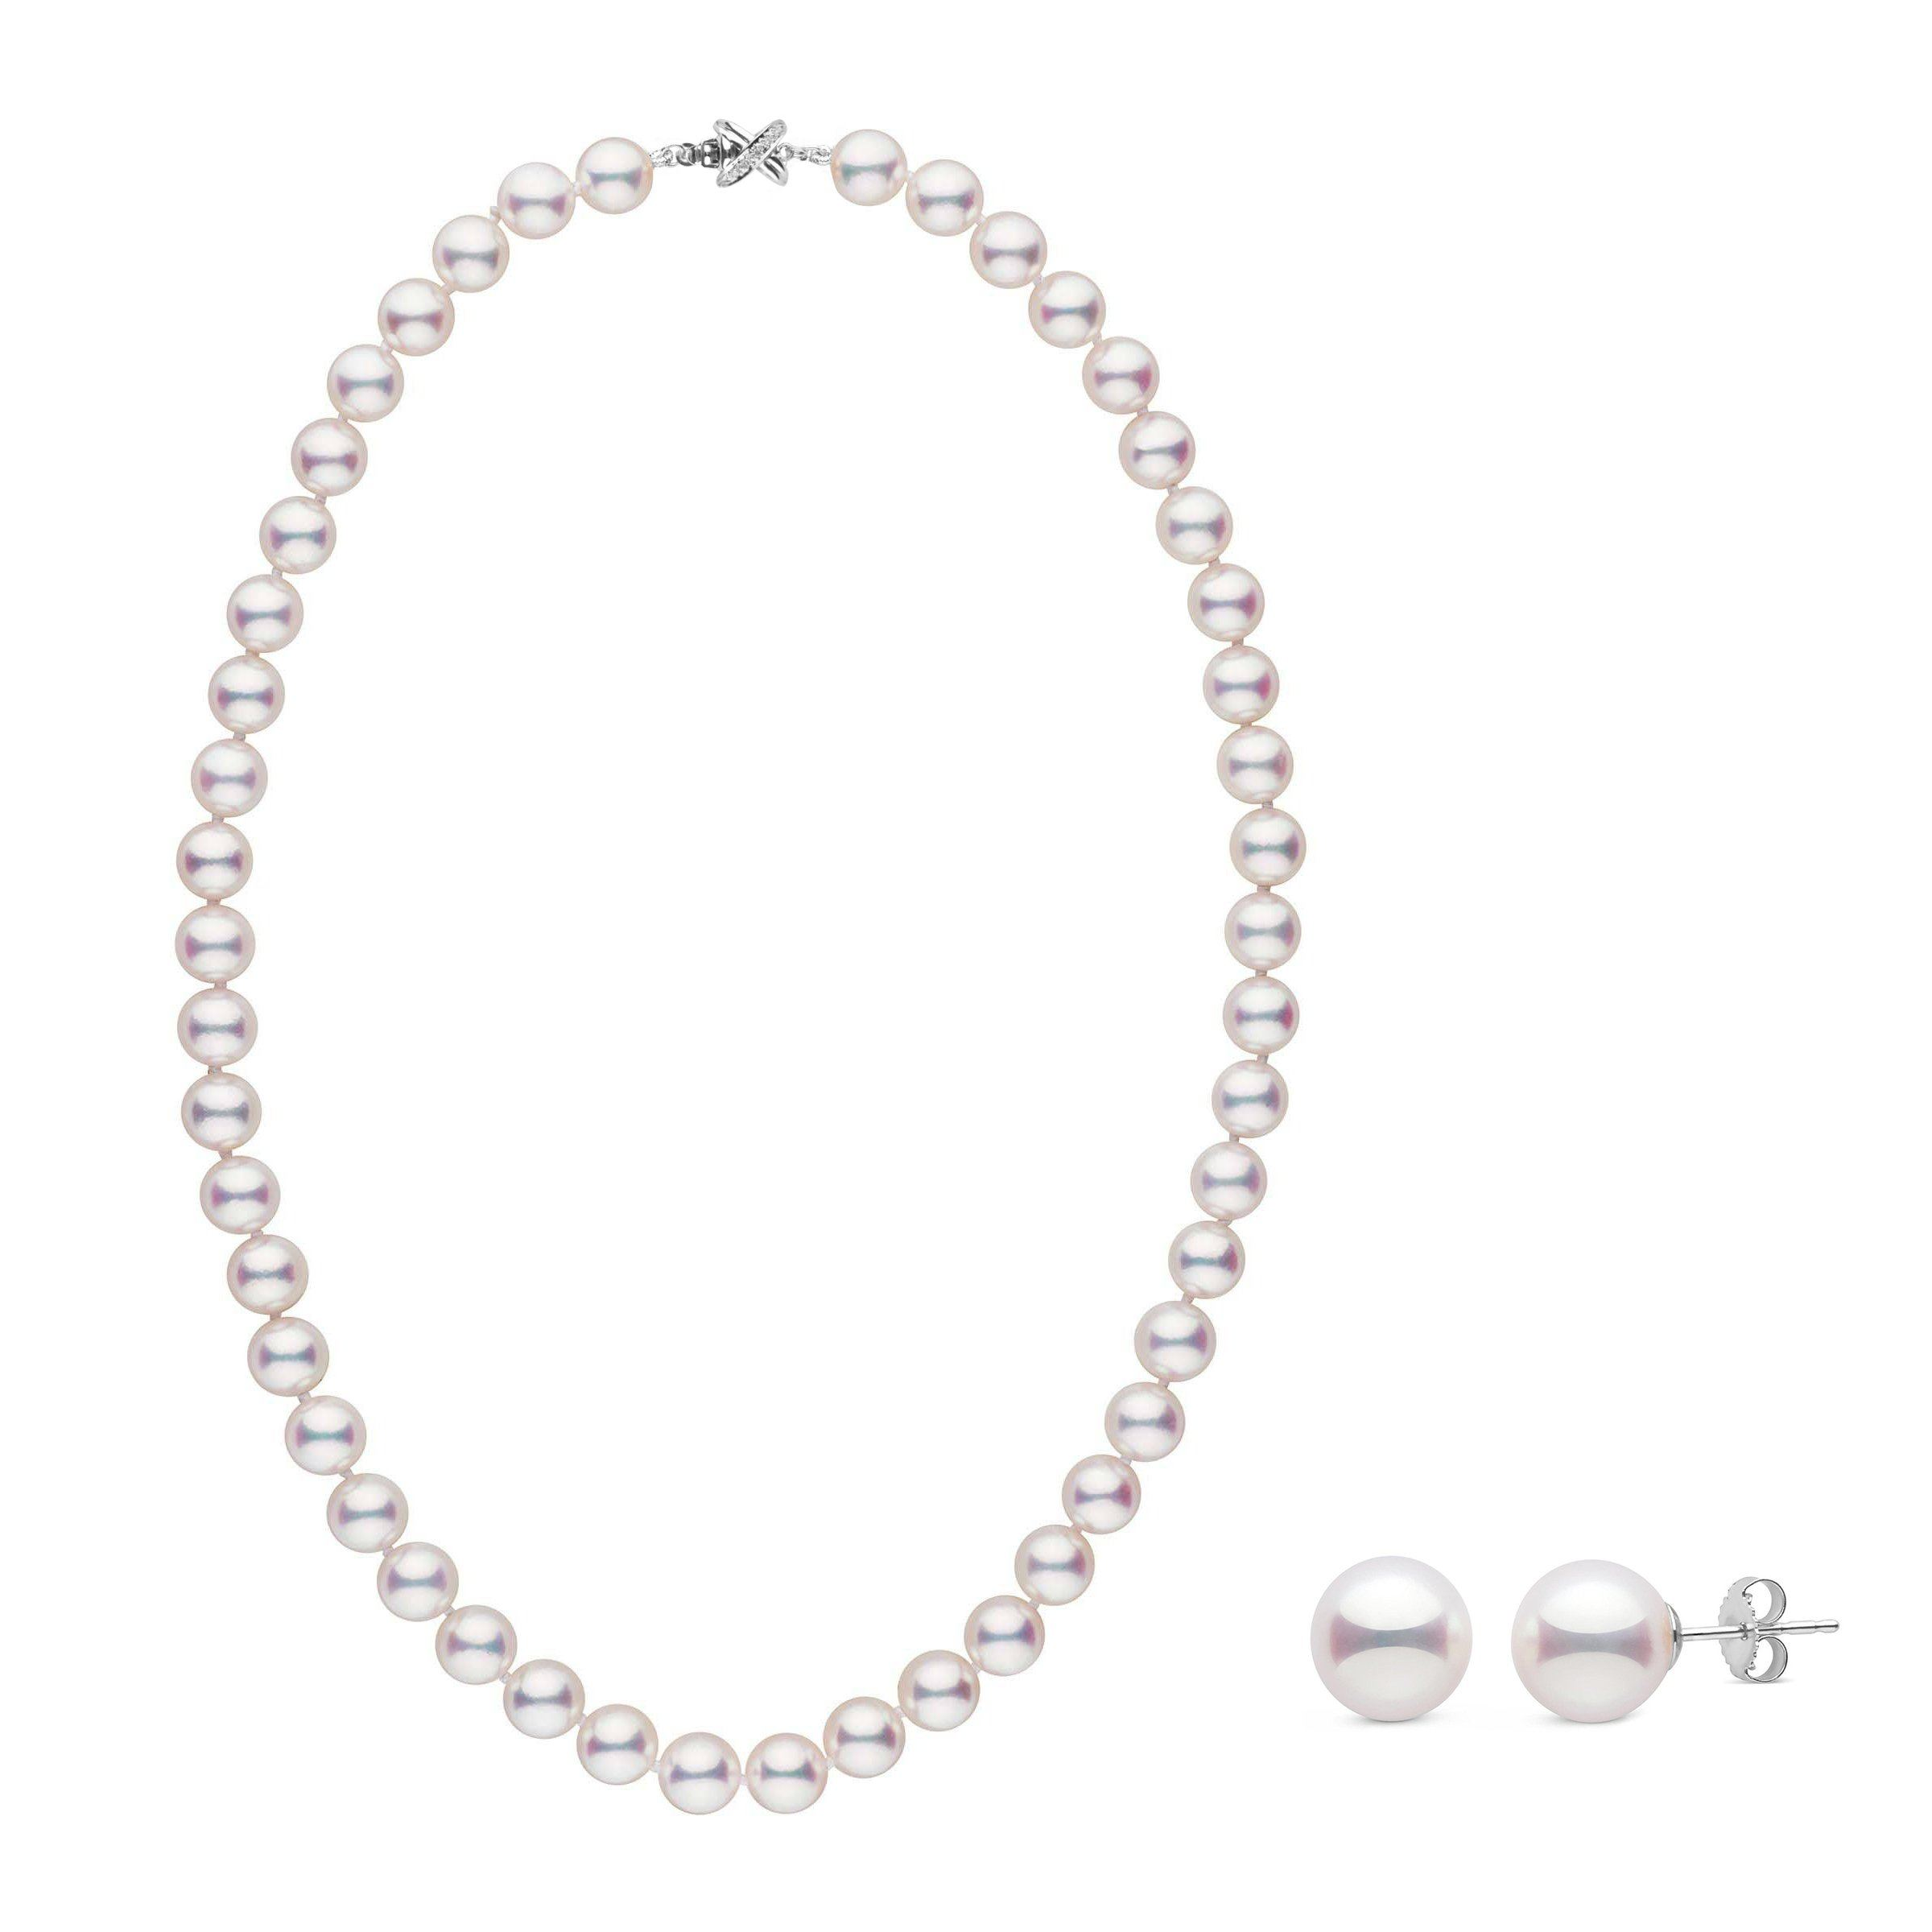 8.5-9.0 mm White Hanadama Pearl Set with Diamond X Clasp